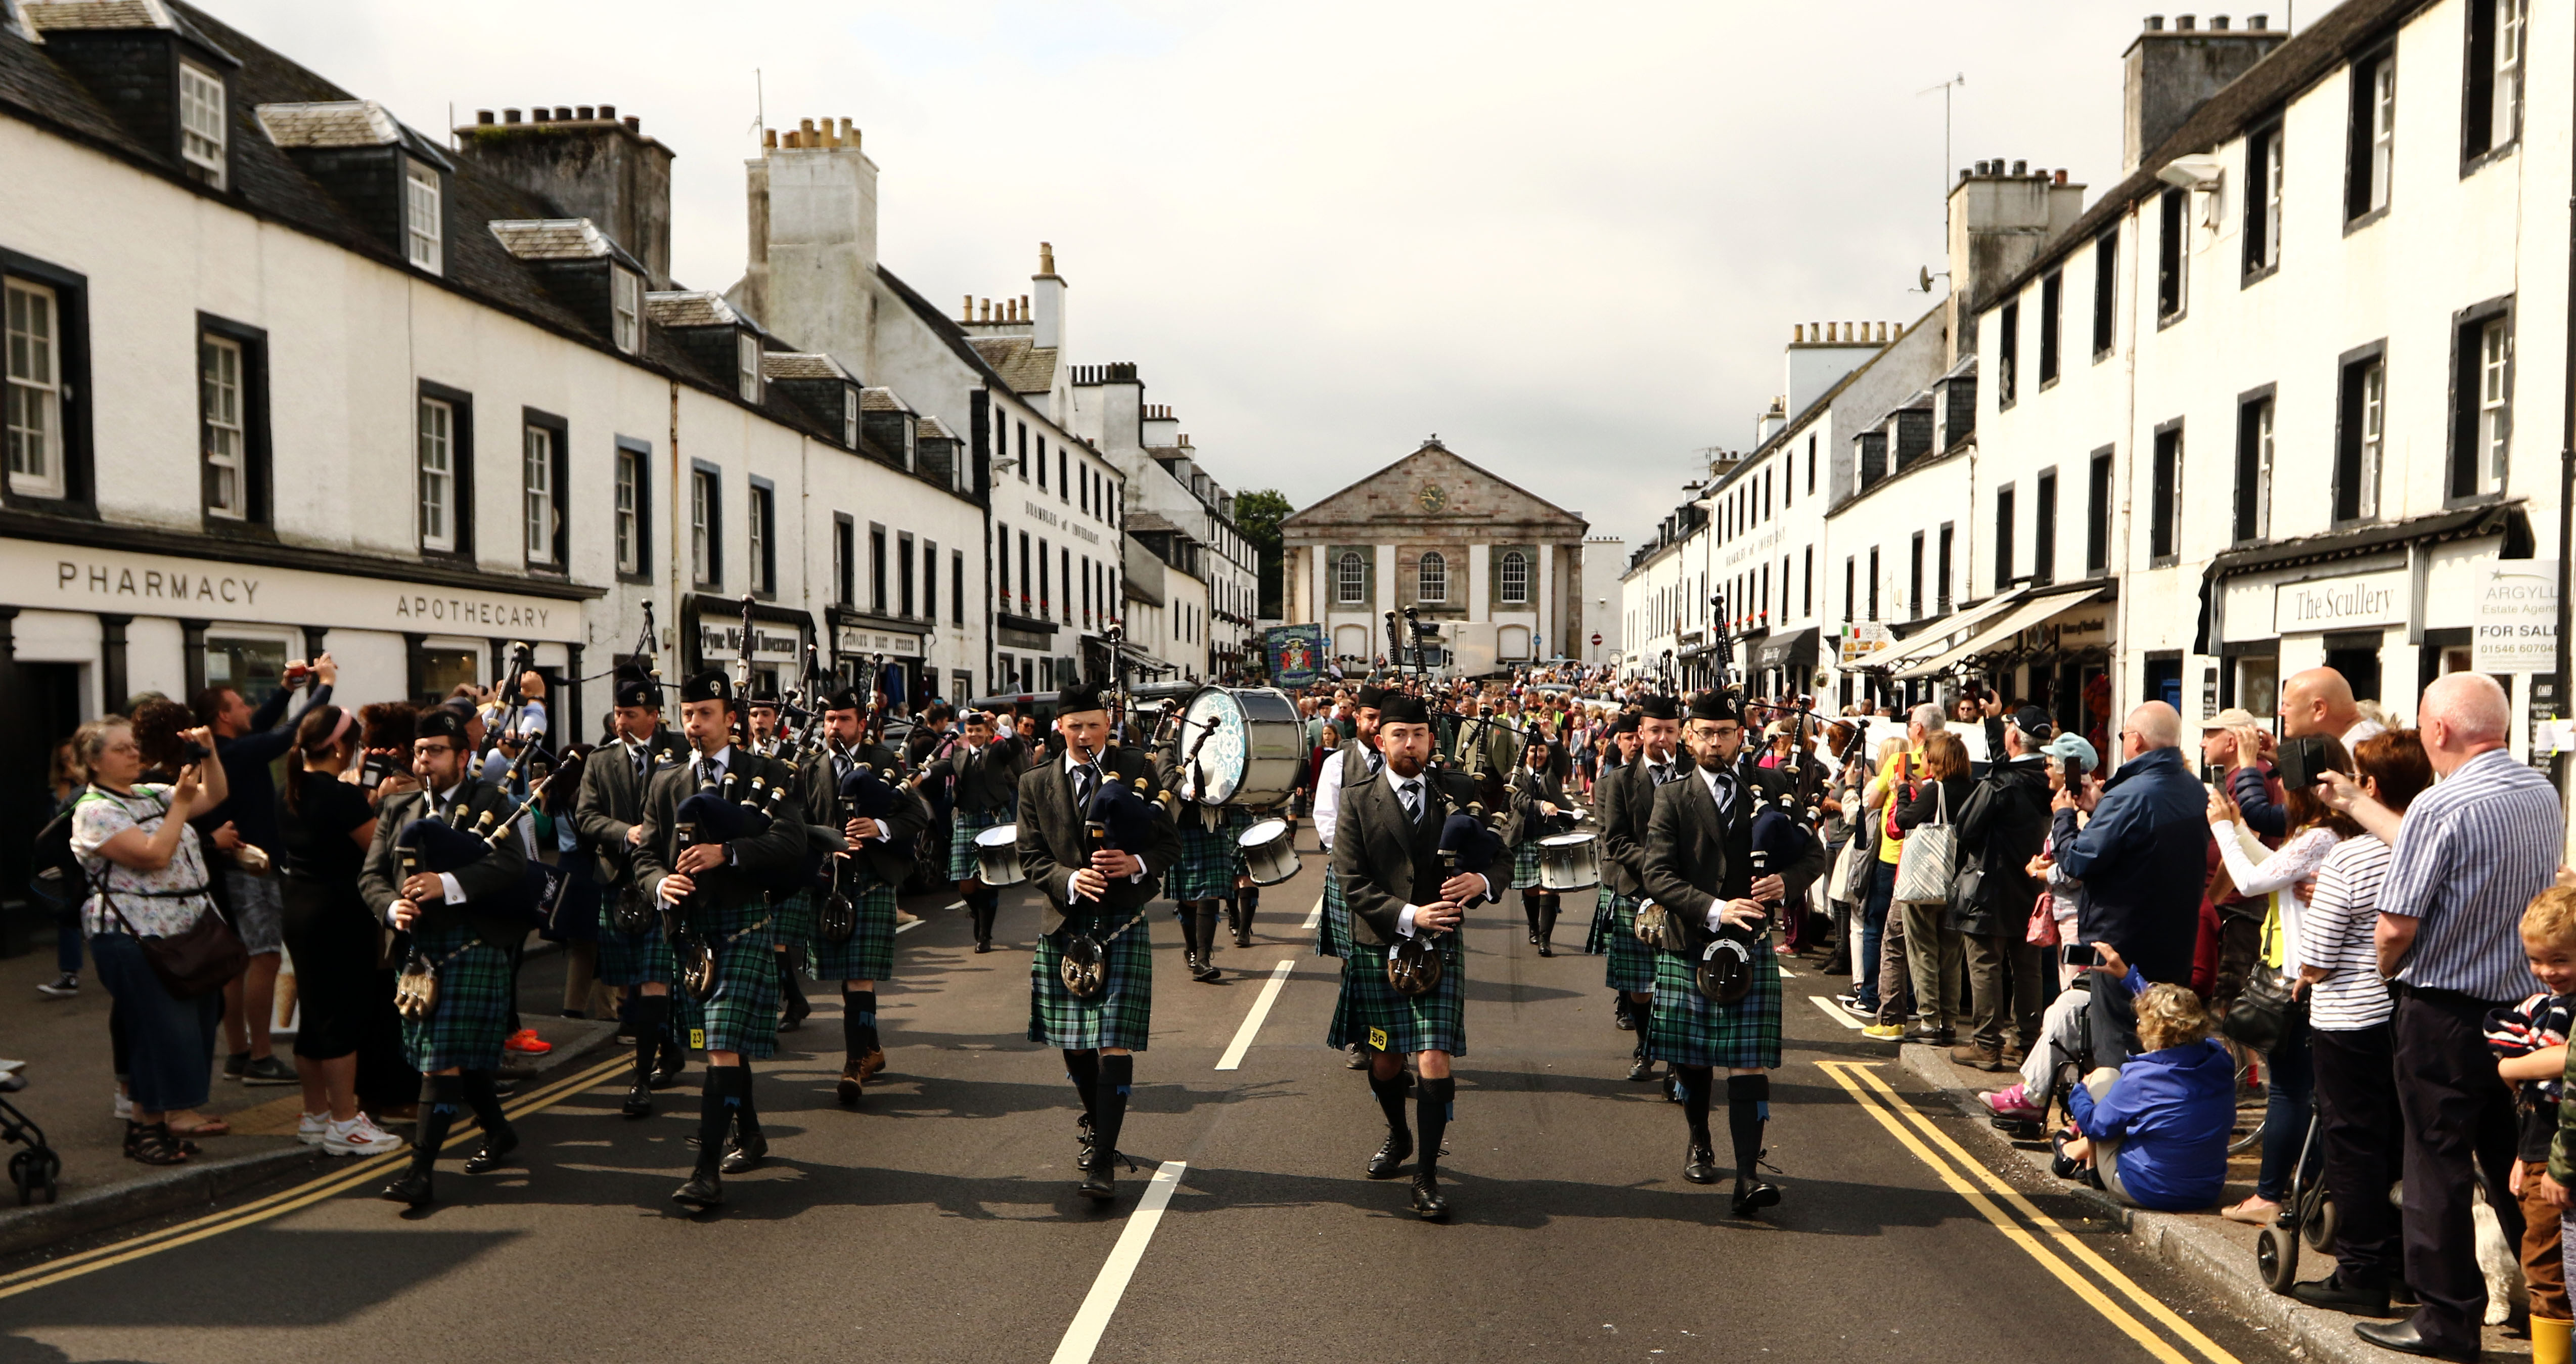 Inveraray and District Pipeband European Champions lead the parade down the main street to the games field.